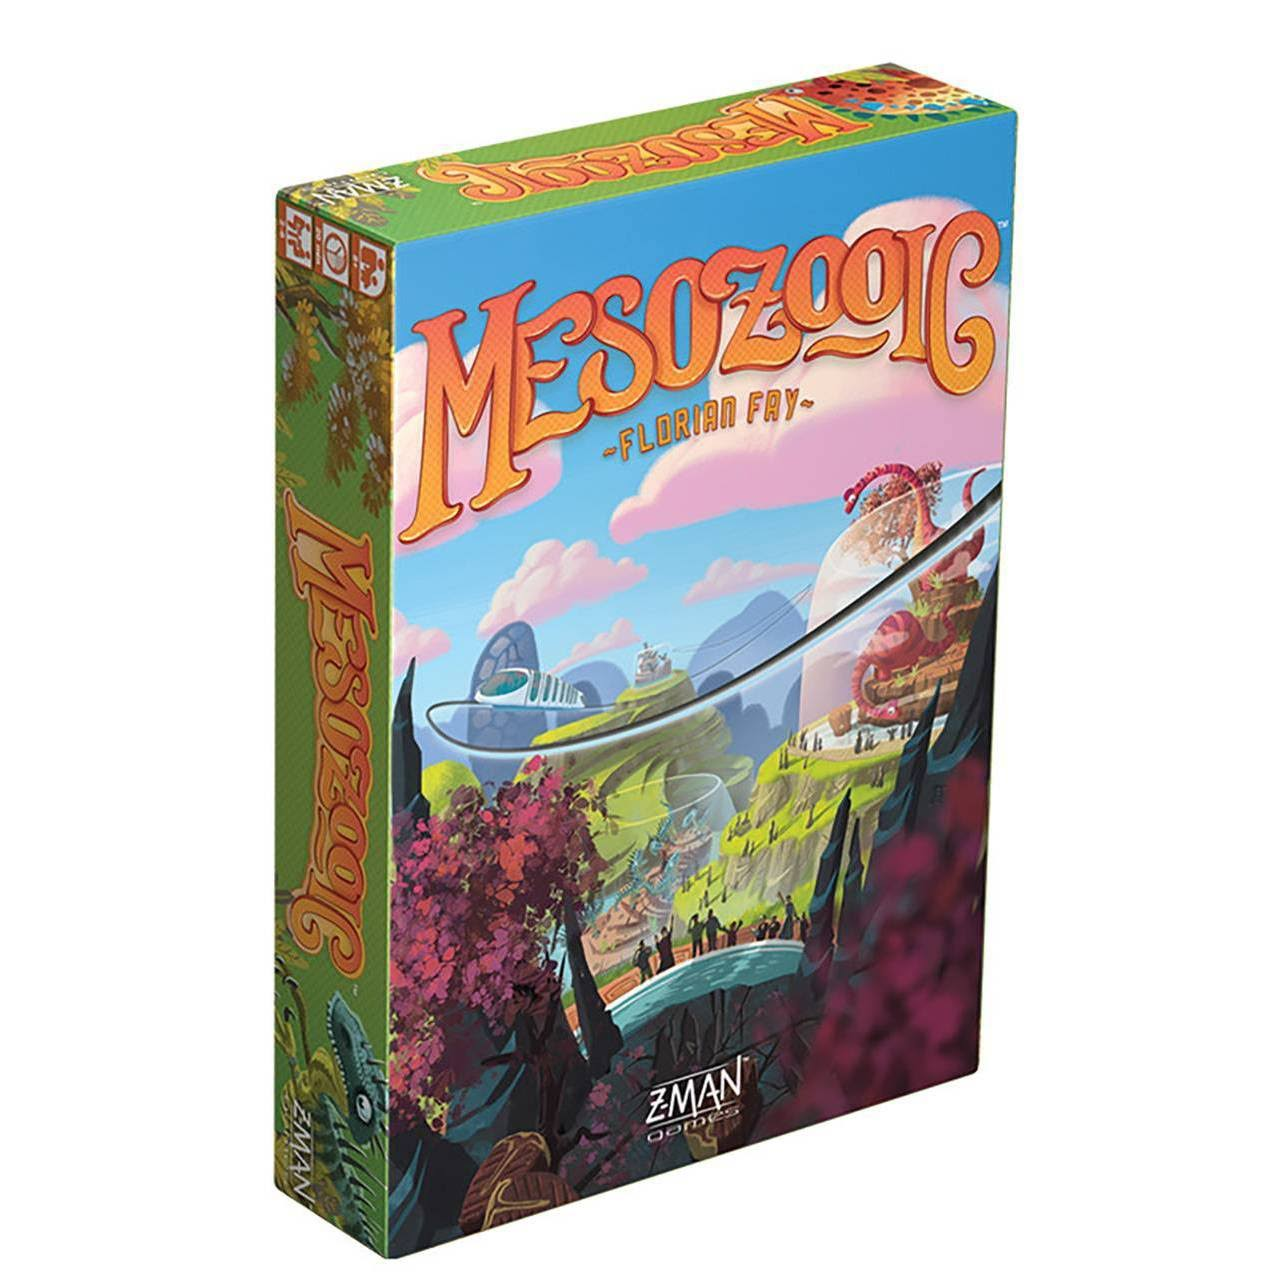 Z-Man Games Mesozooic Board Game